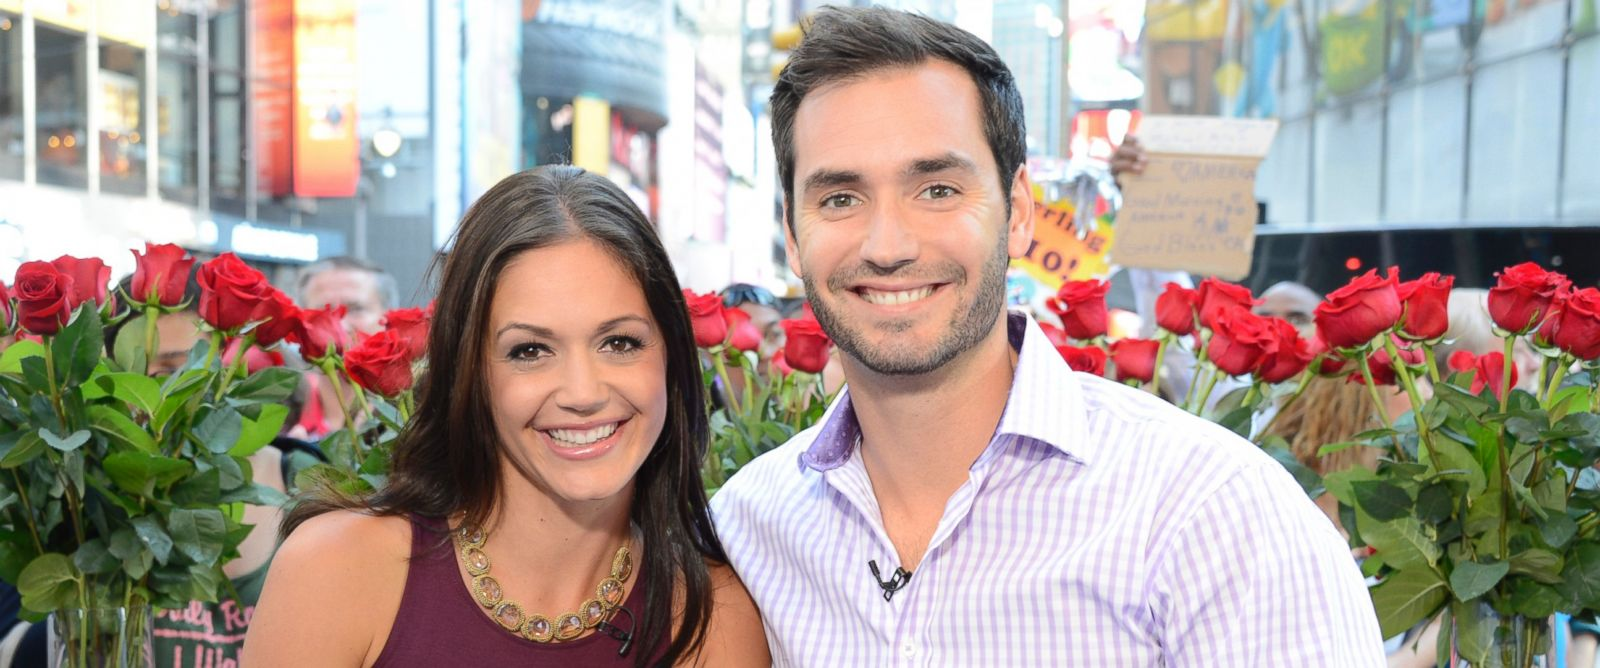 'Bachelorette' Desiree Hartsock and Husband Welcome First ...